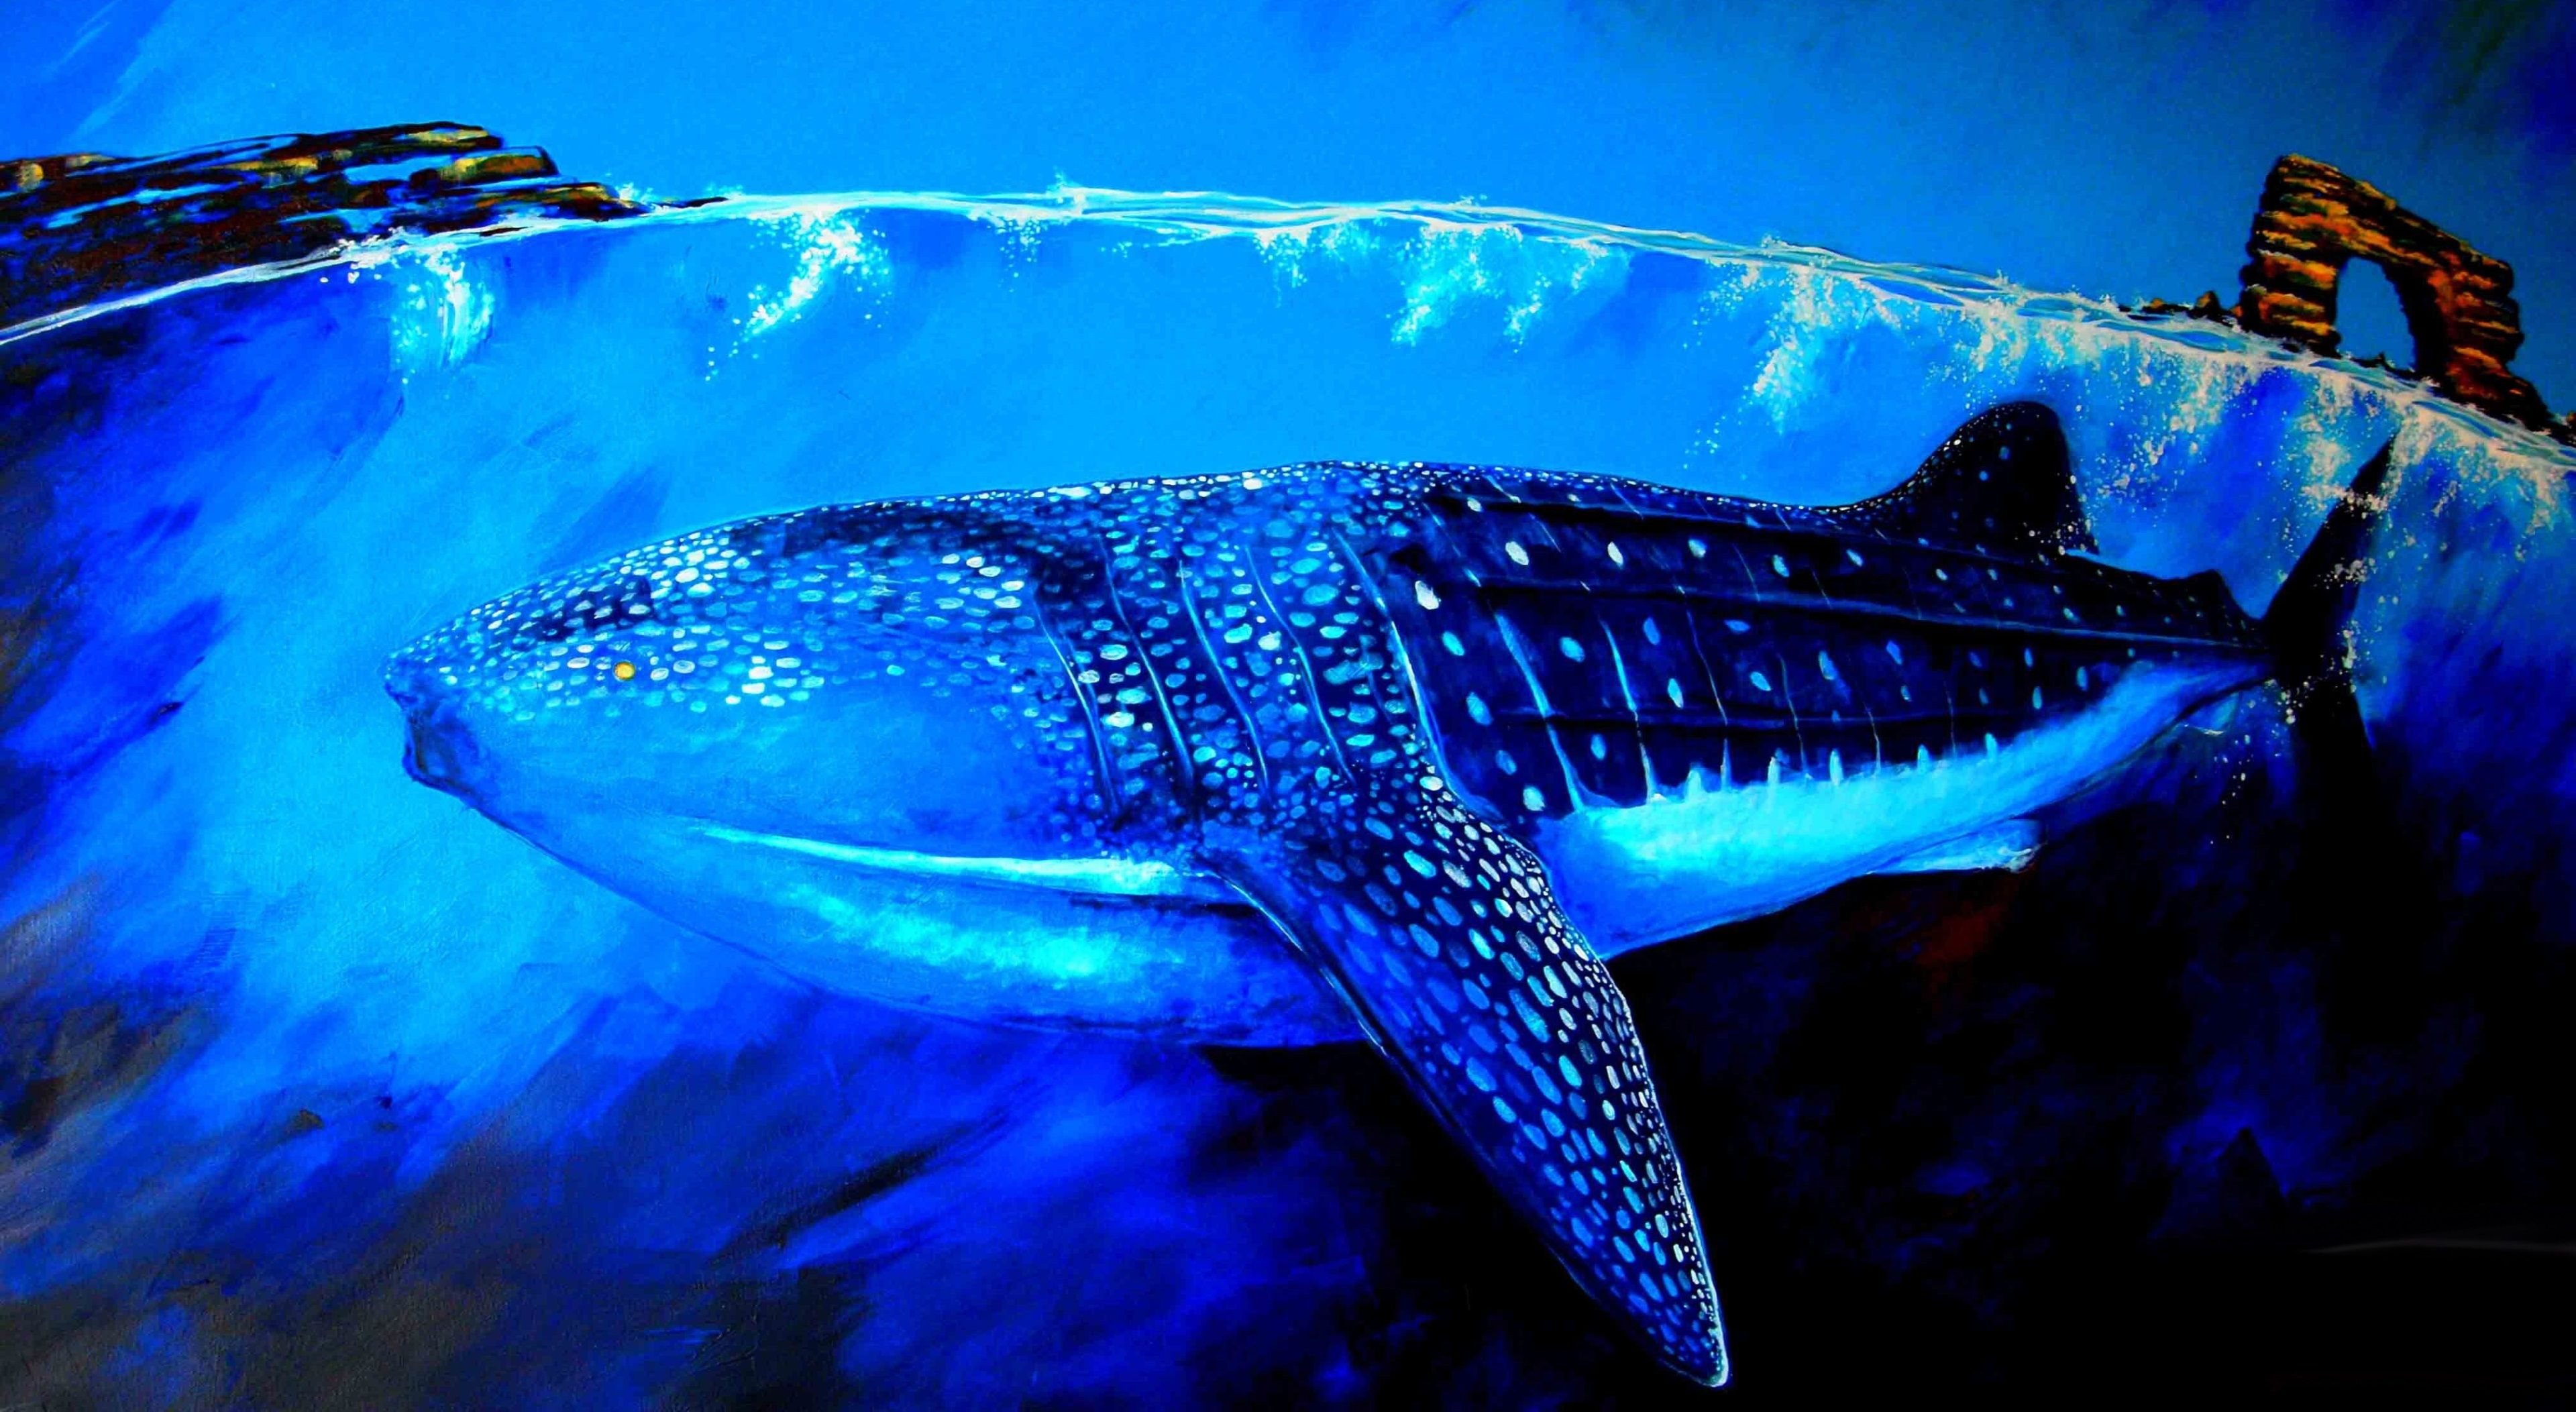 3840x2105 whale shark 4k wallpapers hd high resolution